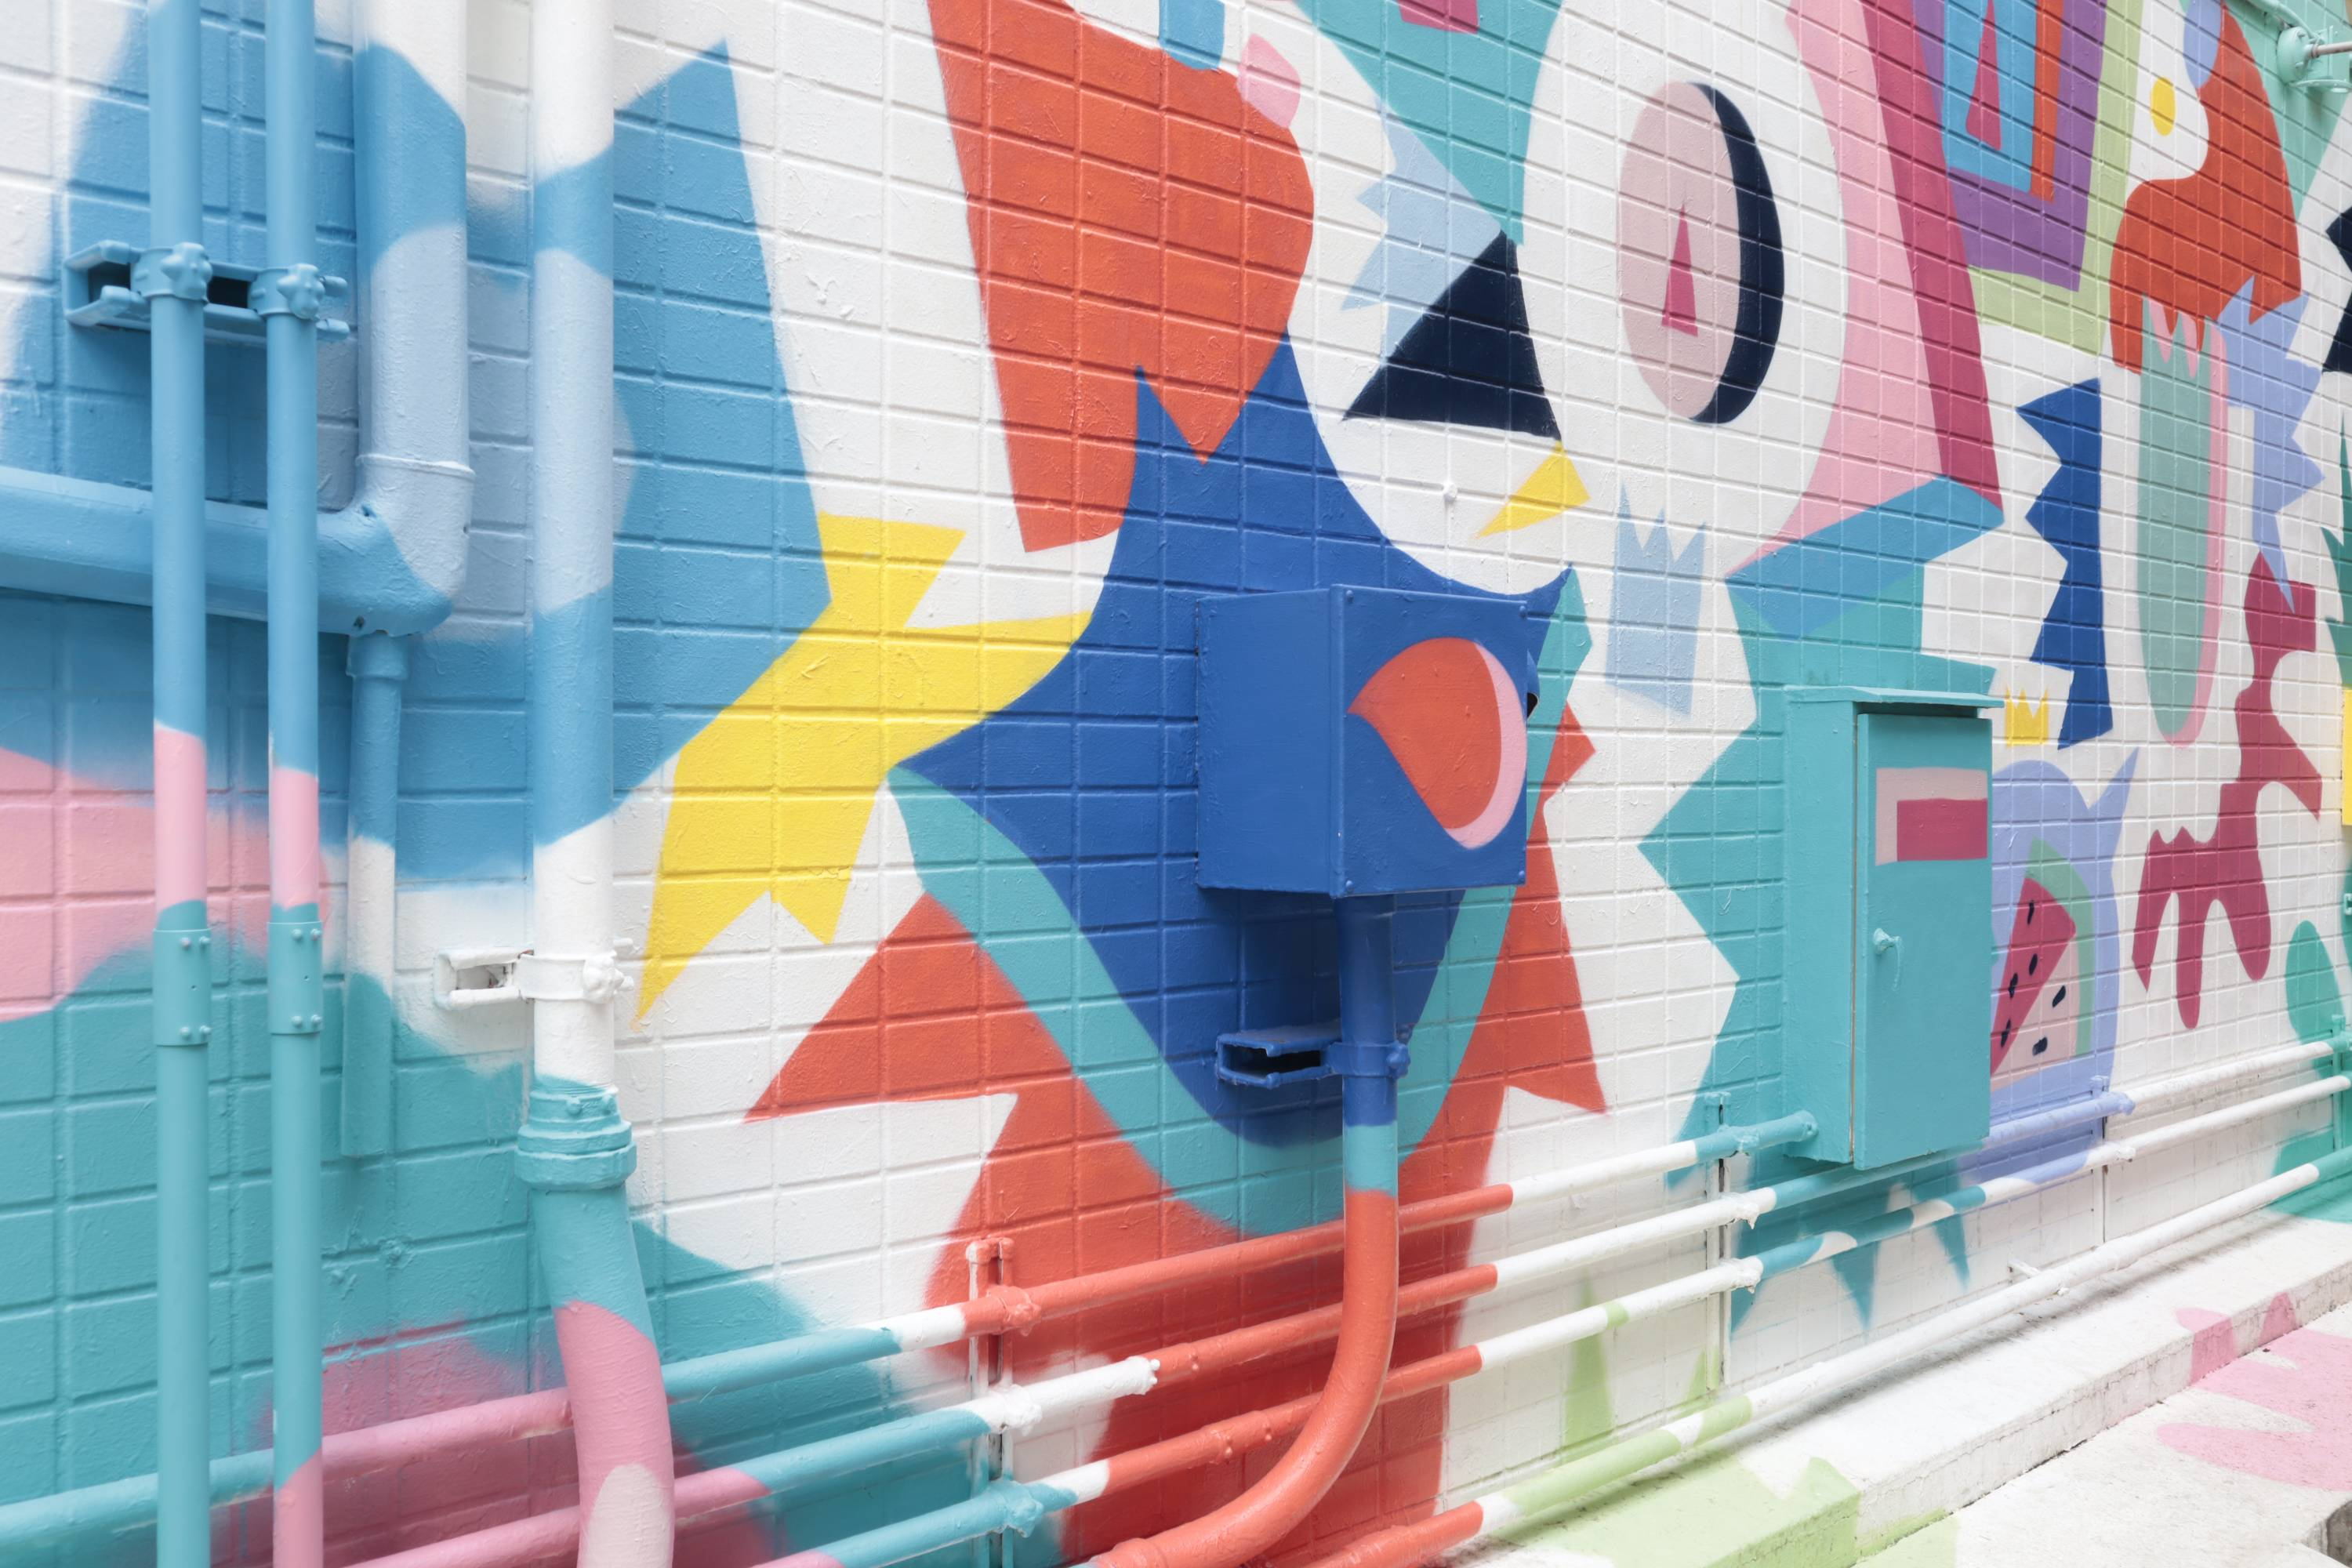 Colourful modern wall mural - photographed with Canon M200